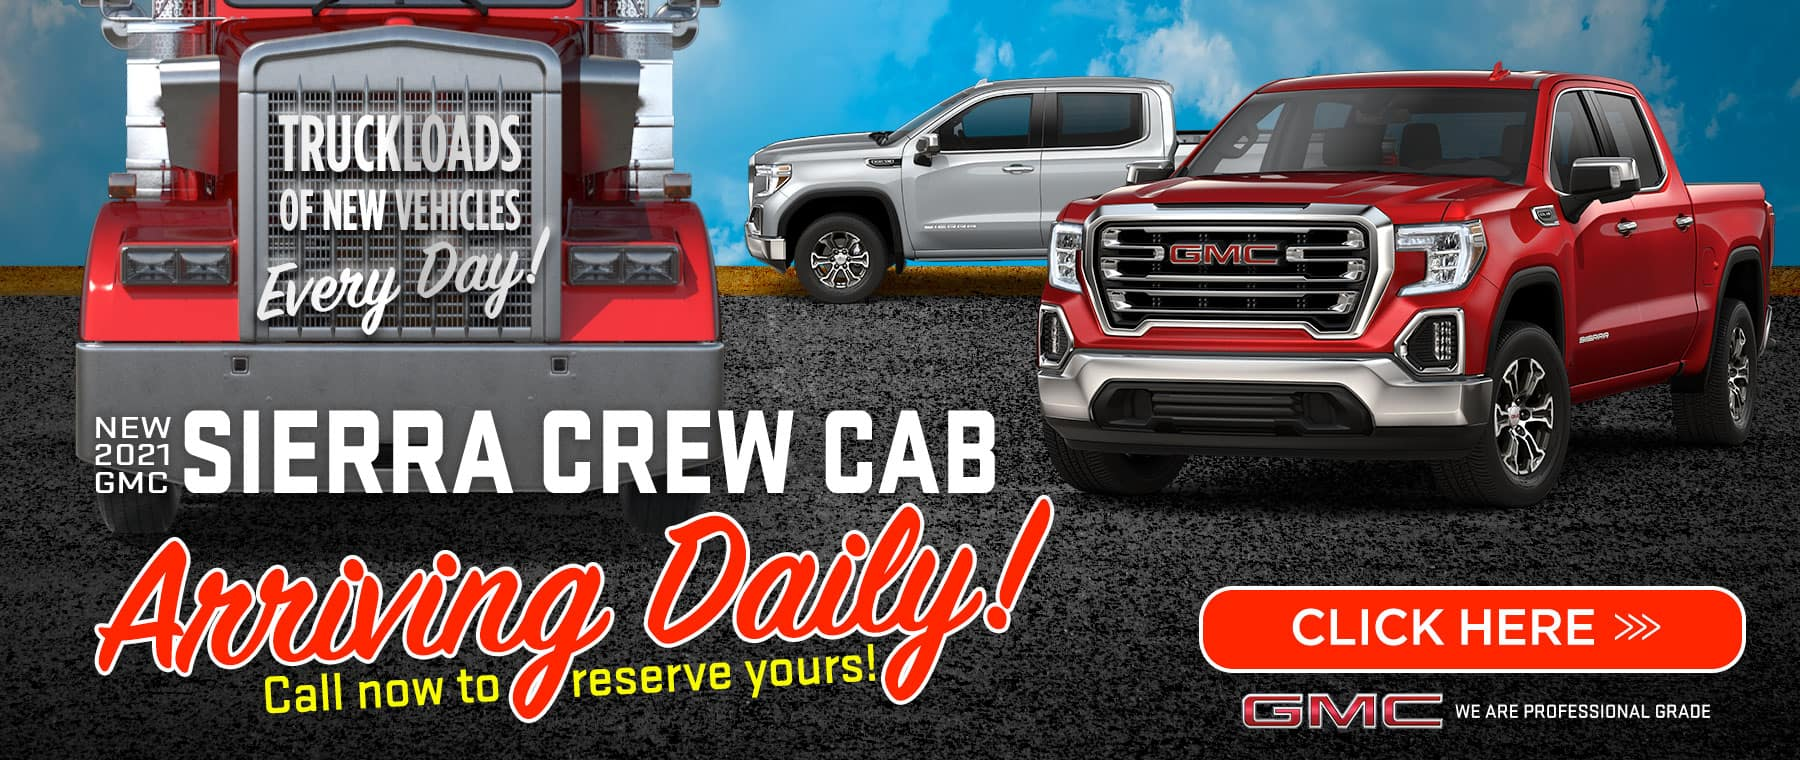 New 2021 Sierra Crew Cab - Arriving Daily